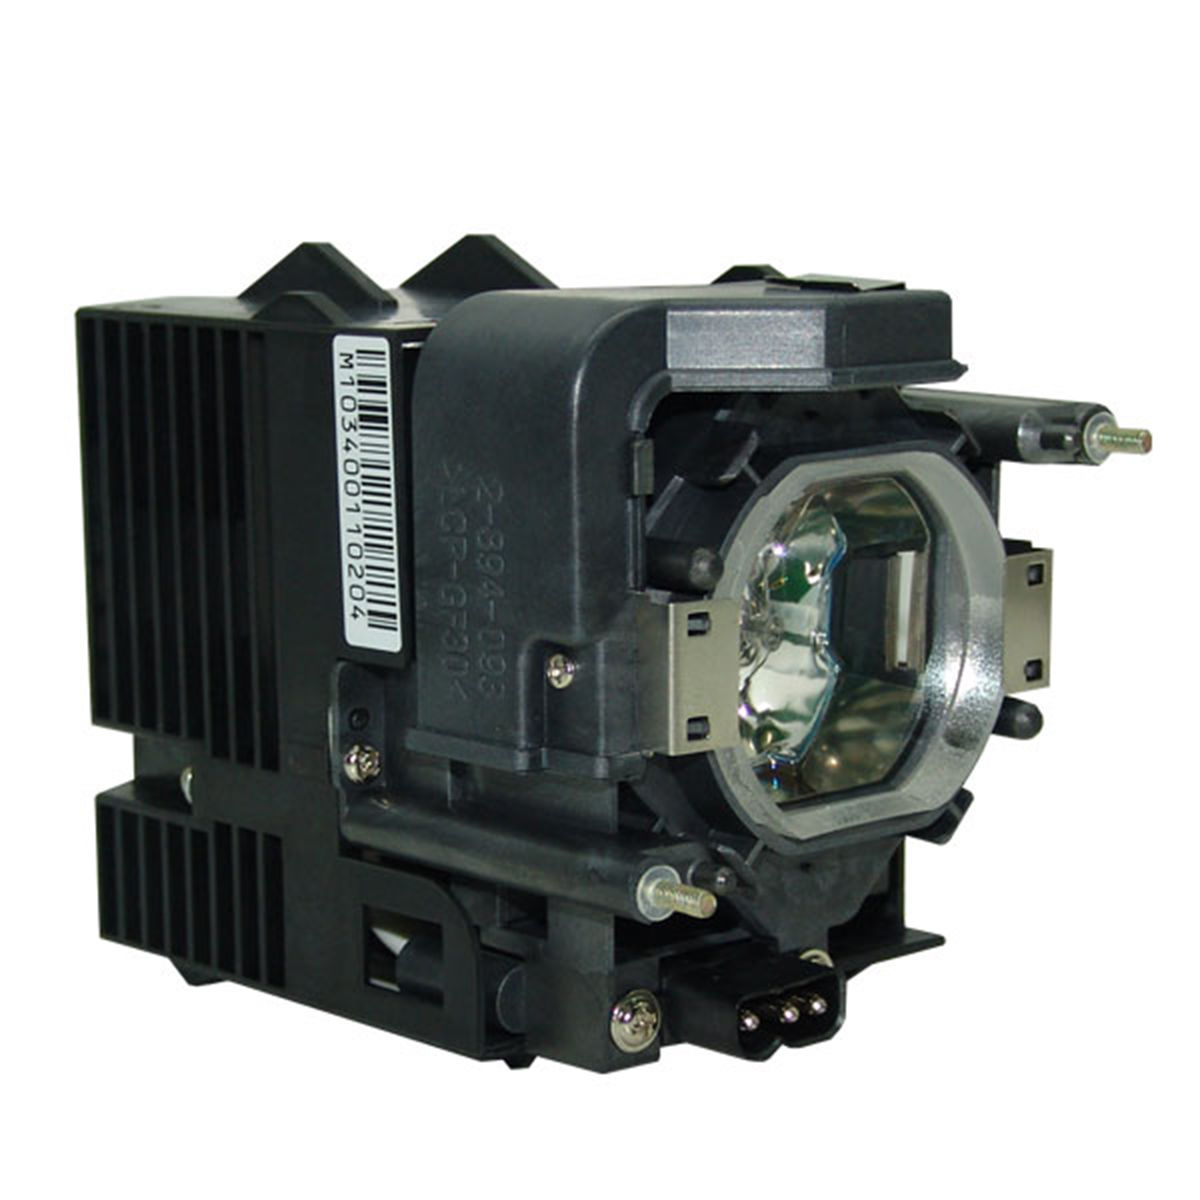 Projector Lamp Bulb LMP-F270 for SONY VPL-FE40 VPL-FE40L VPL-FX40 VPL-FX40L VPL-FX41 VPL-FX41L VPL-FW41 VPL-FW41L With Housing replacement original projector lamp bulb with housing lmp f280 for sony vpl fh60 vpl fh60w vpl fh60b vpl f530w vpl f535h